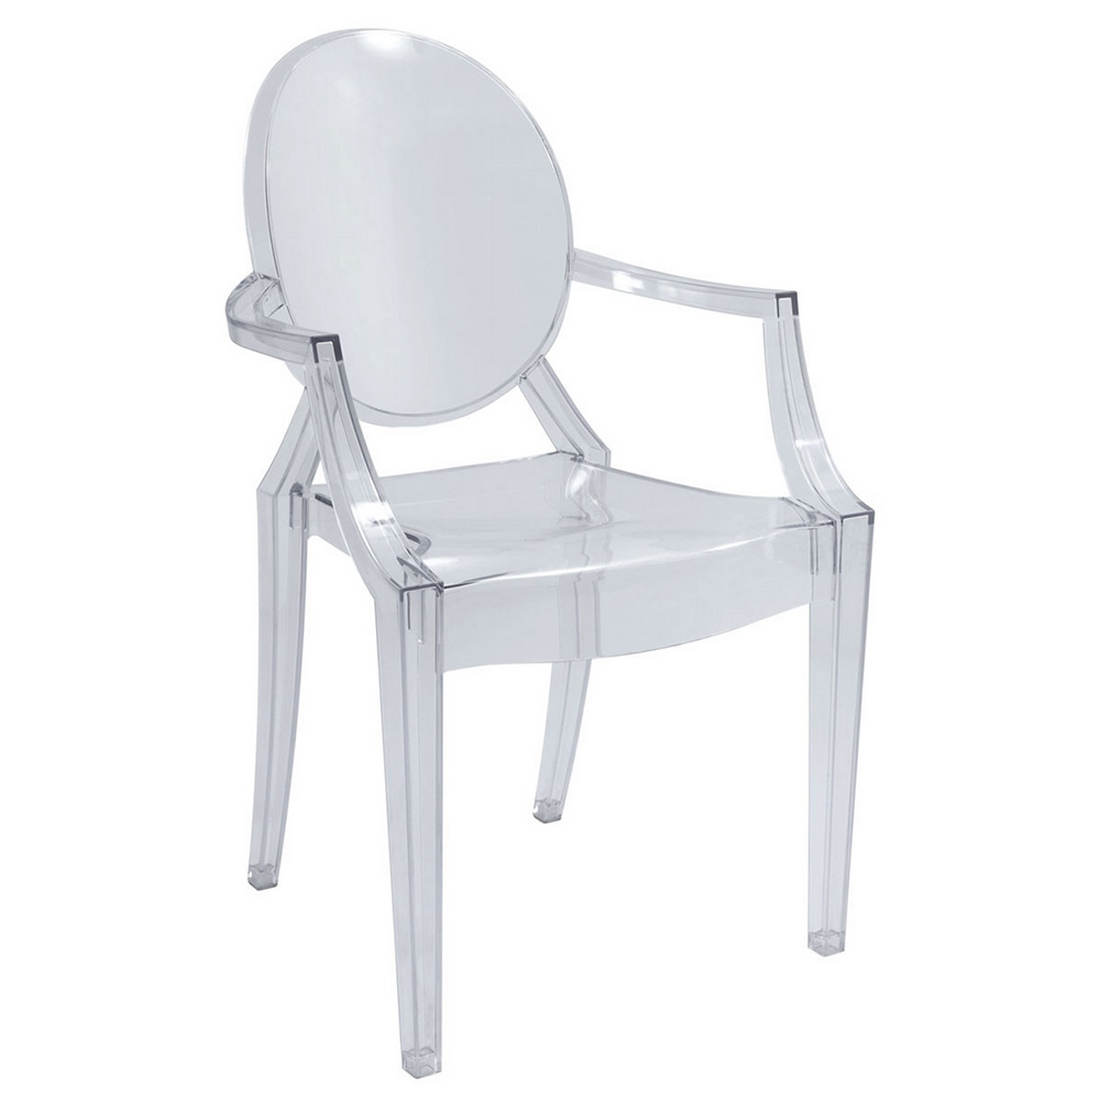 Louis Ghost Chair By Kartell The Classic Reinvented By